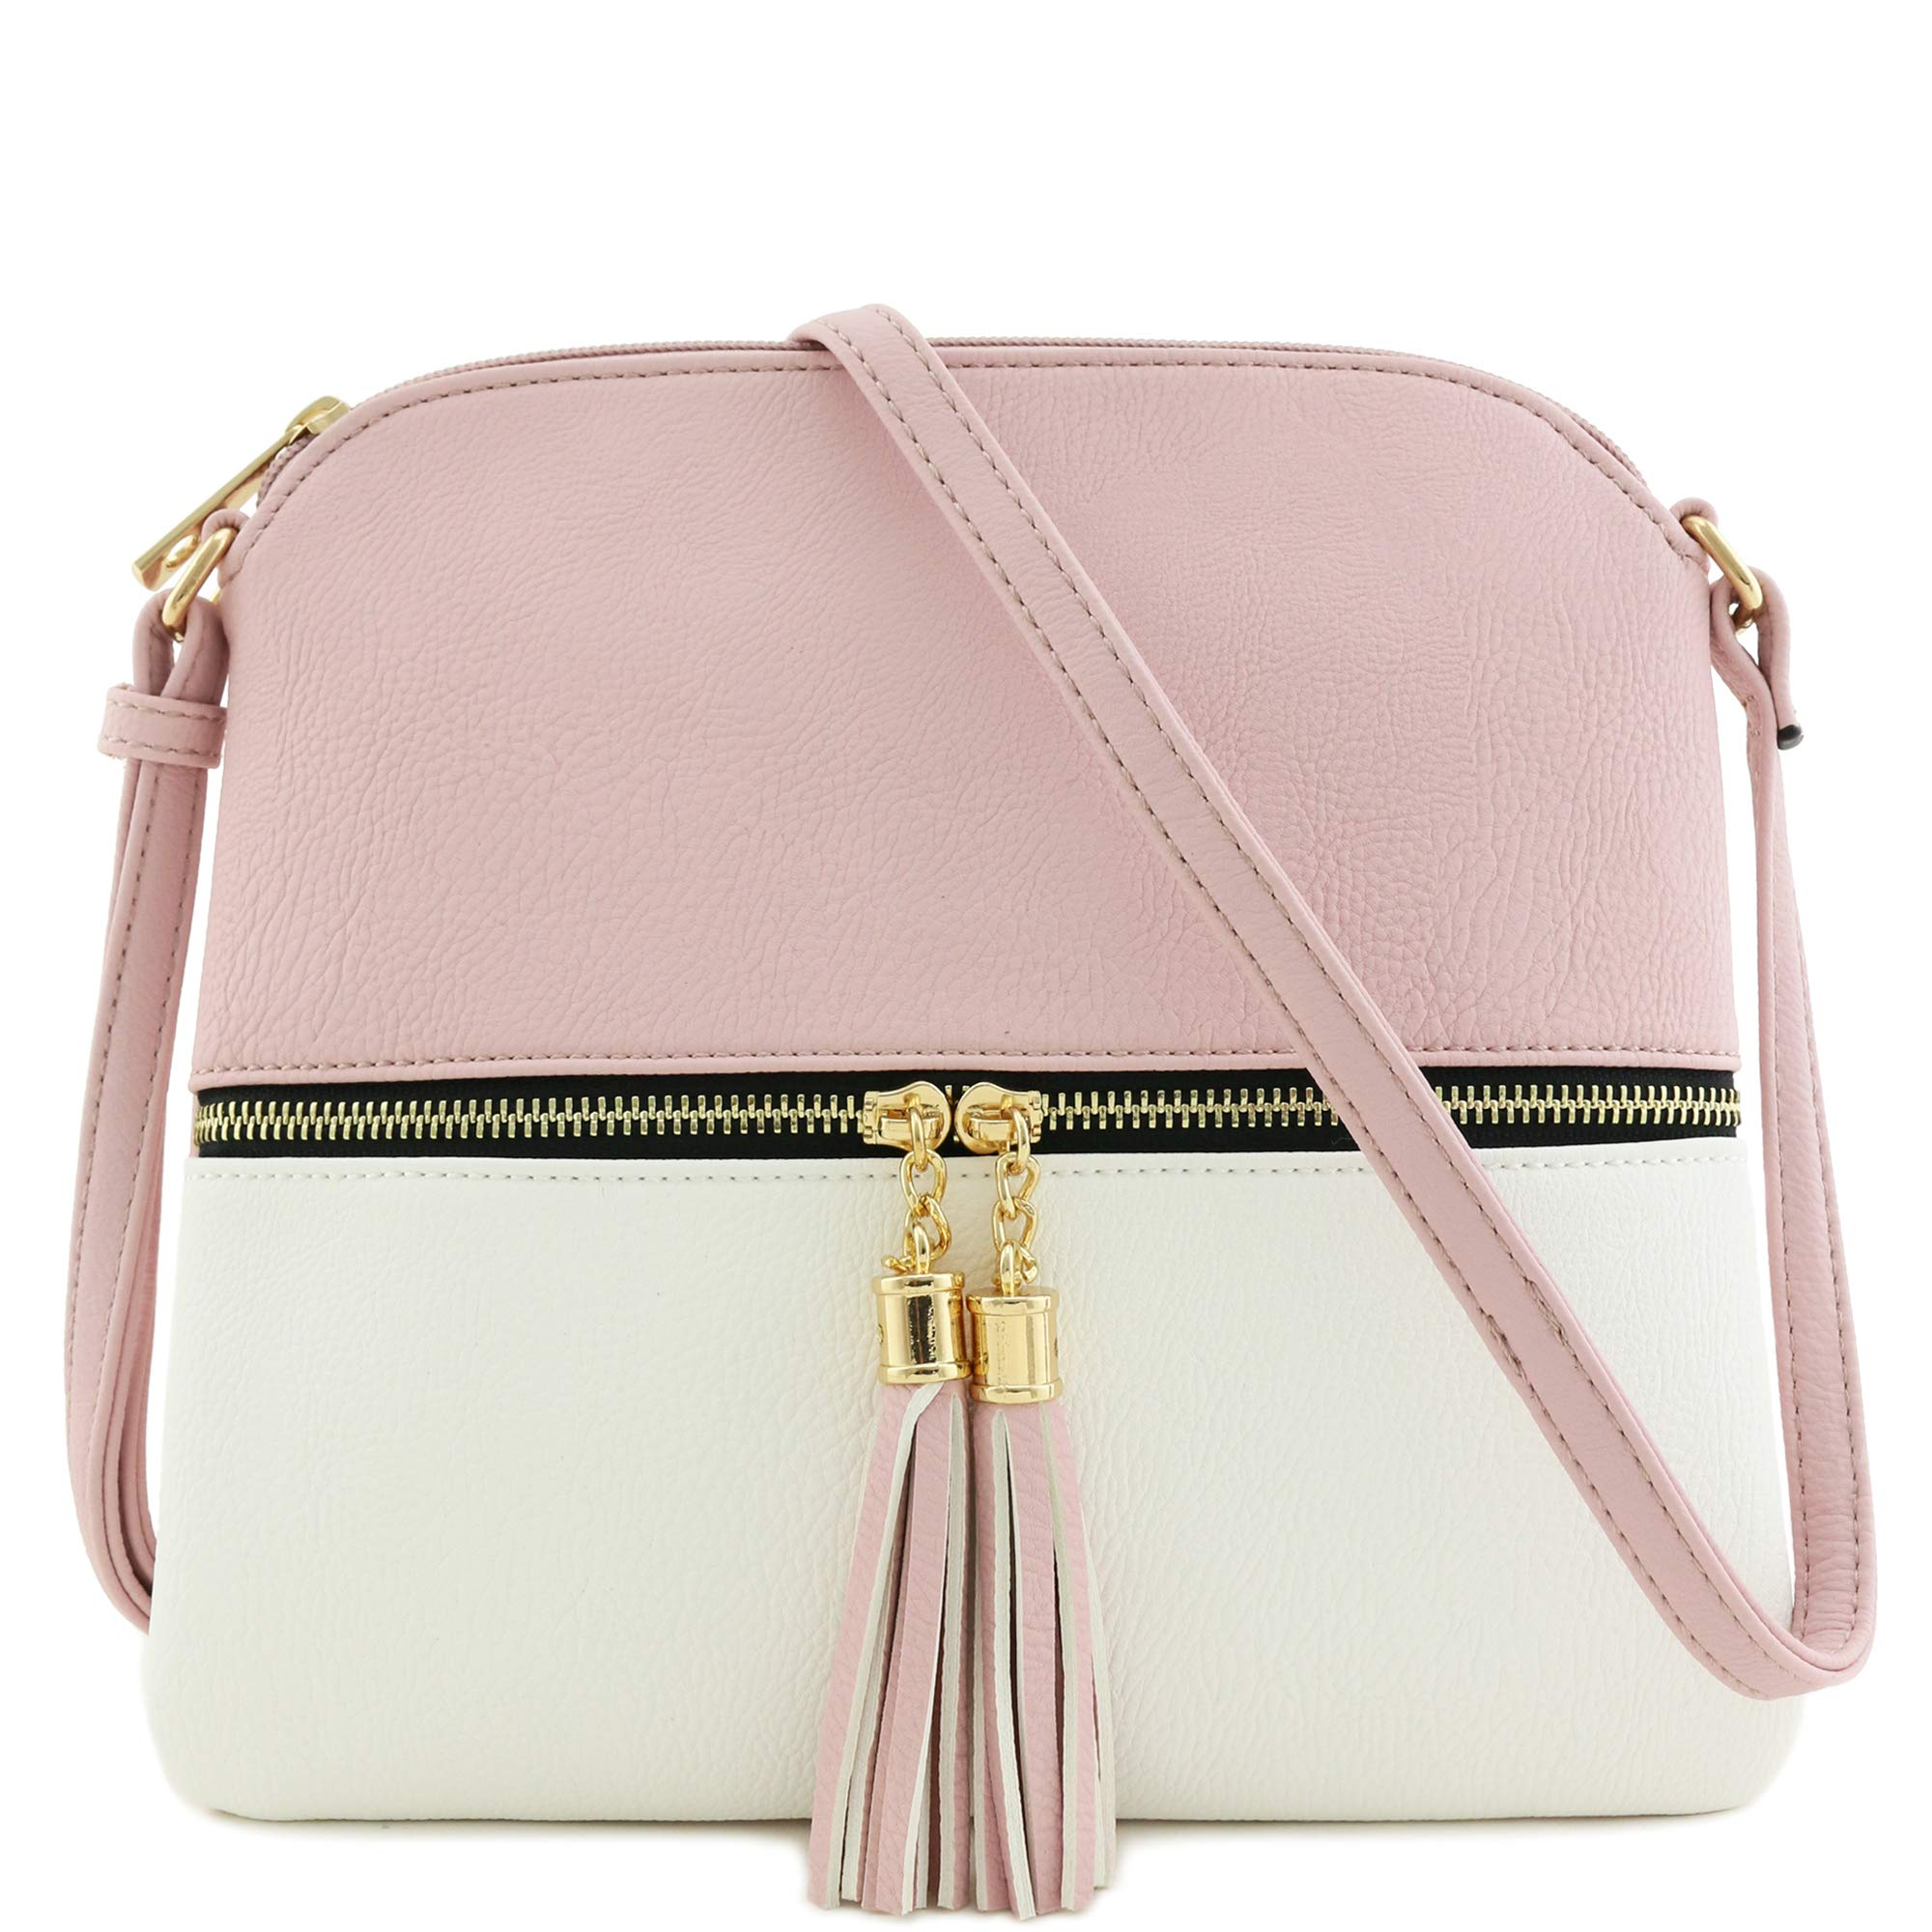 Lightweight Colorblock Medium Crossbody Bag with Tassel (Blush/White) by DELUXITY (Image #1)